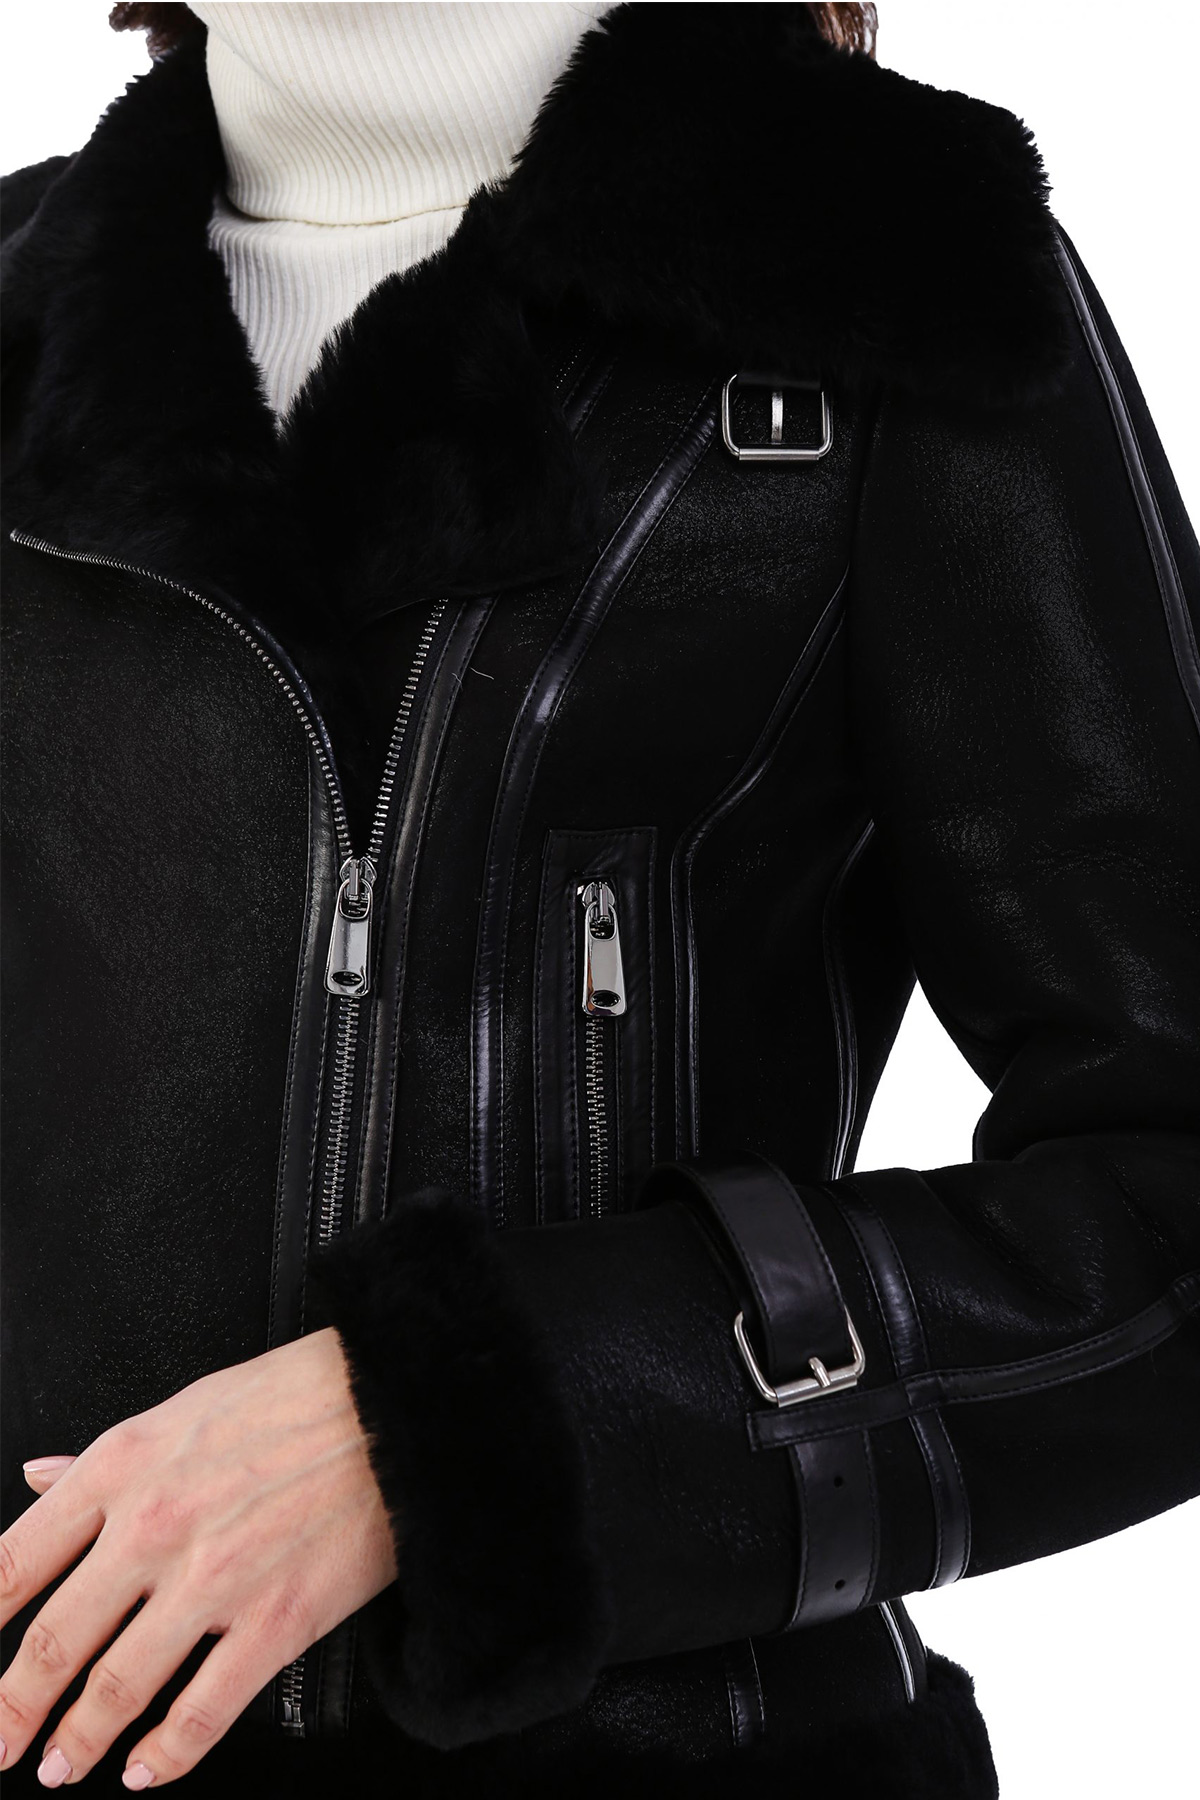 Real Leather Jacket With Fur Collar